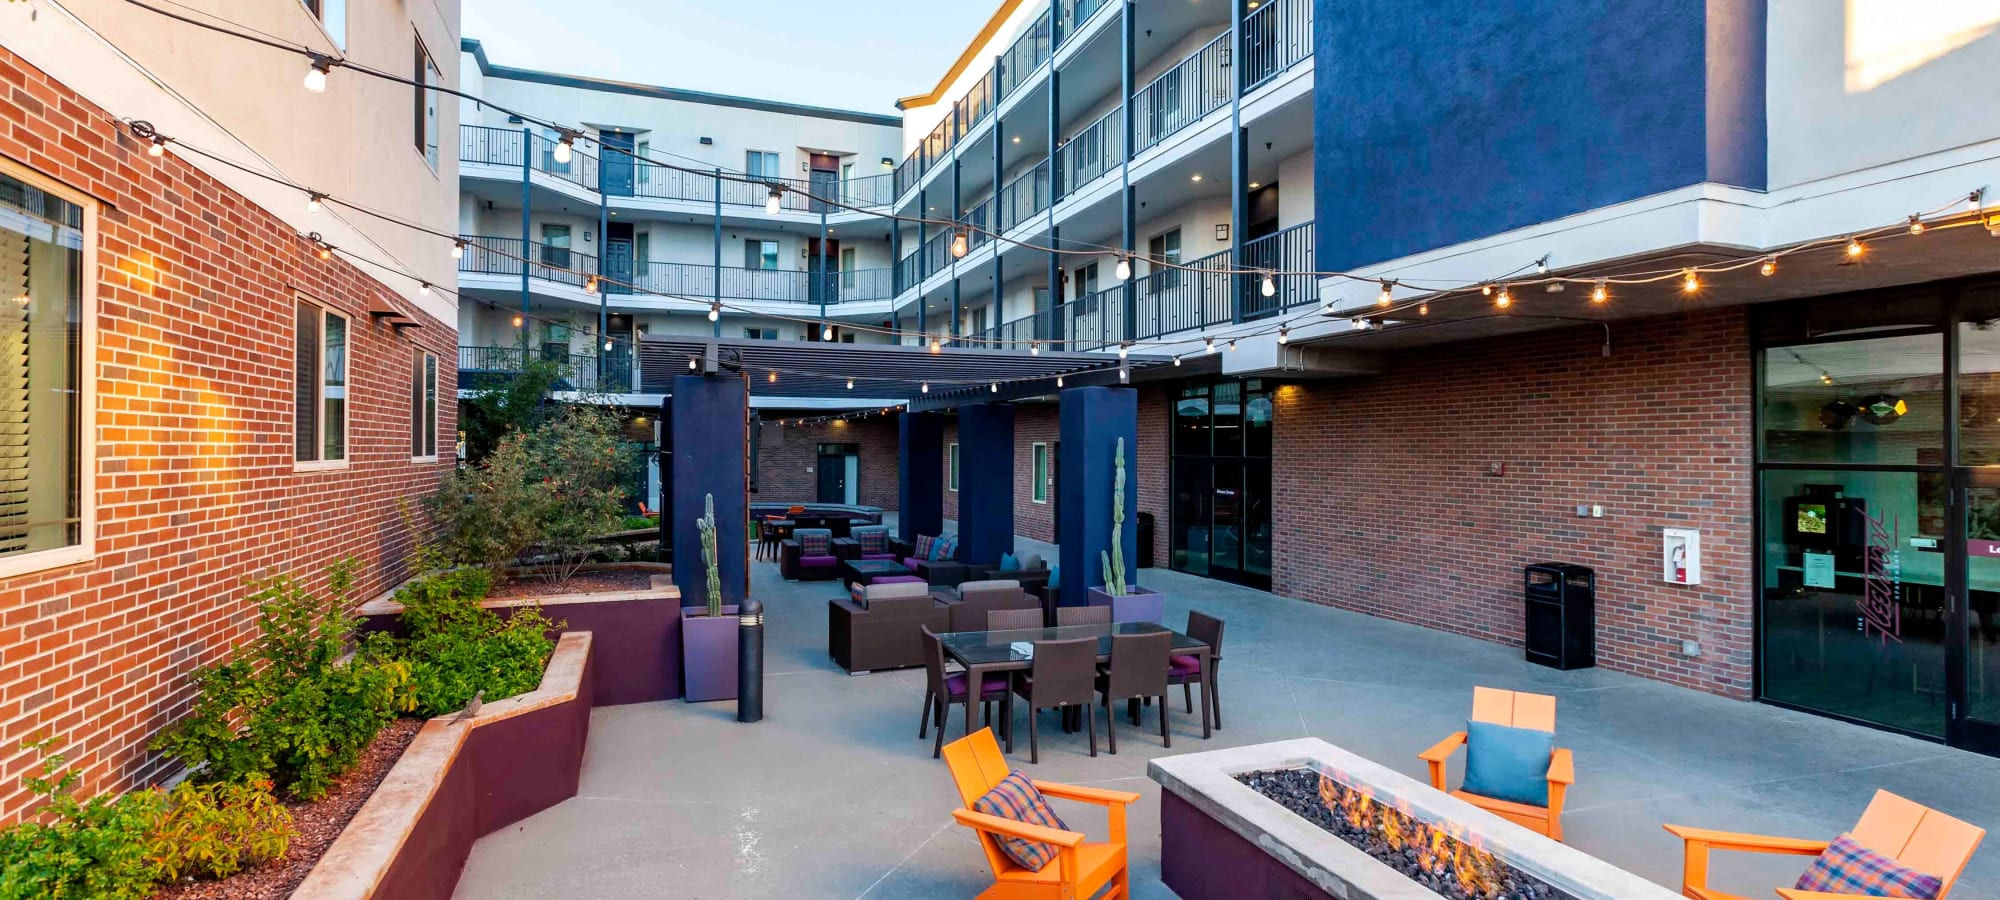 Outdoor courtyard area at The Fleetwood in Tempe, Arizona